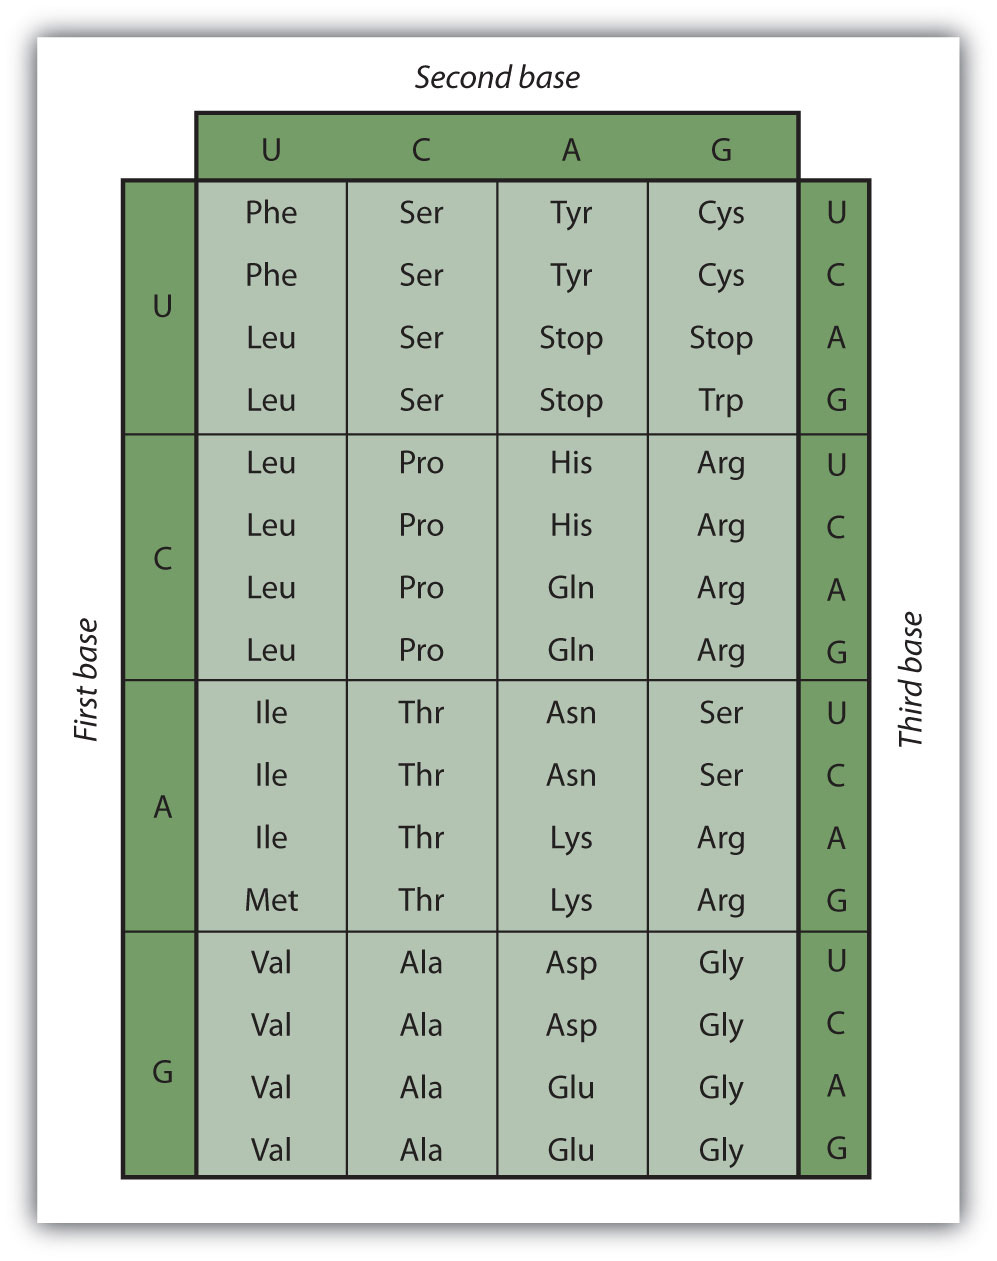 how to read standard genetic code table